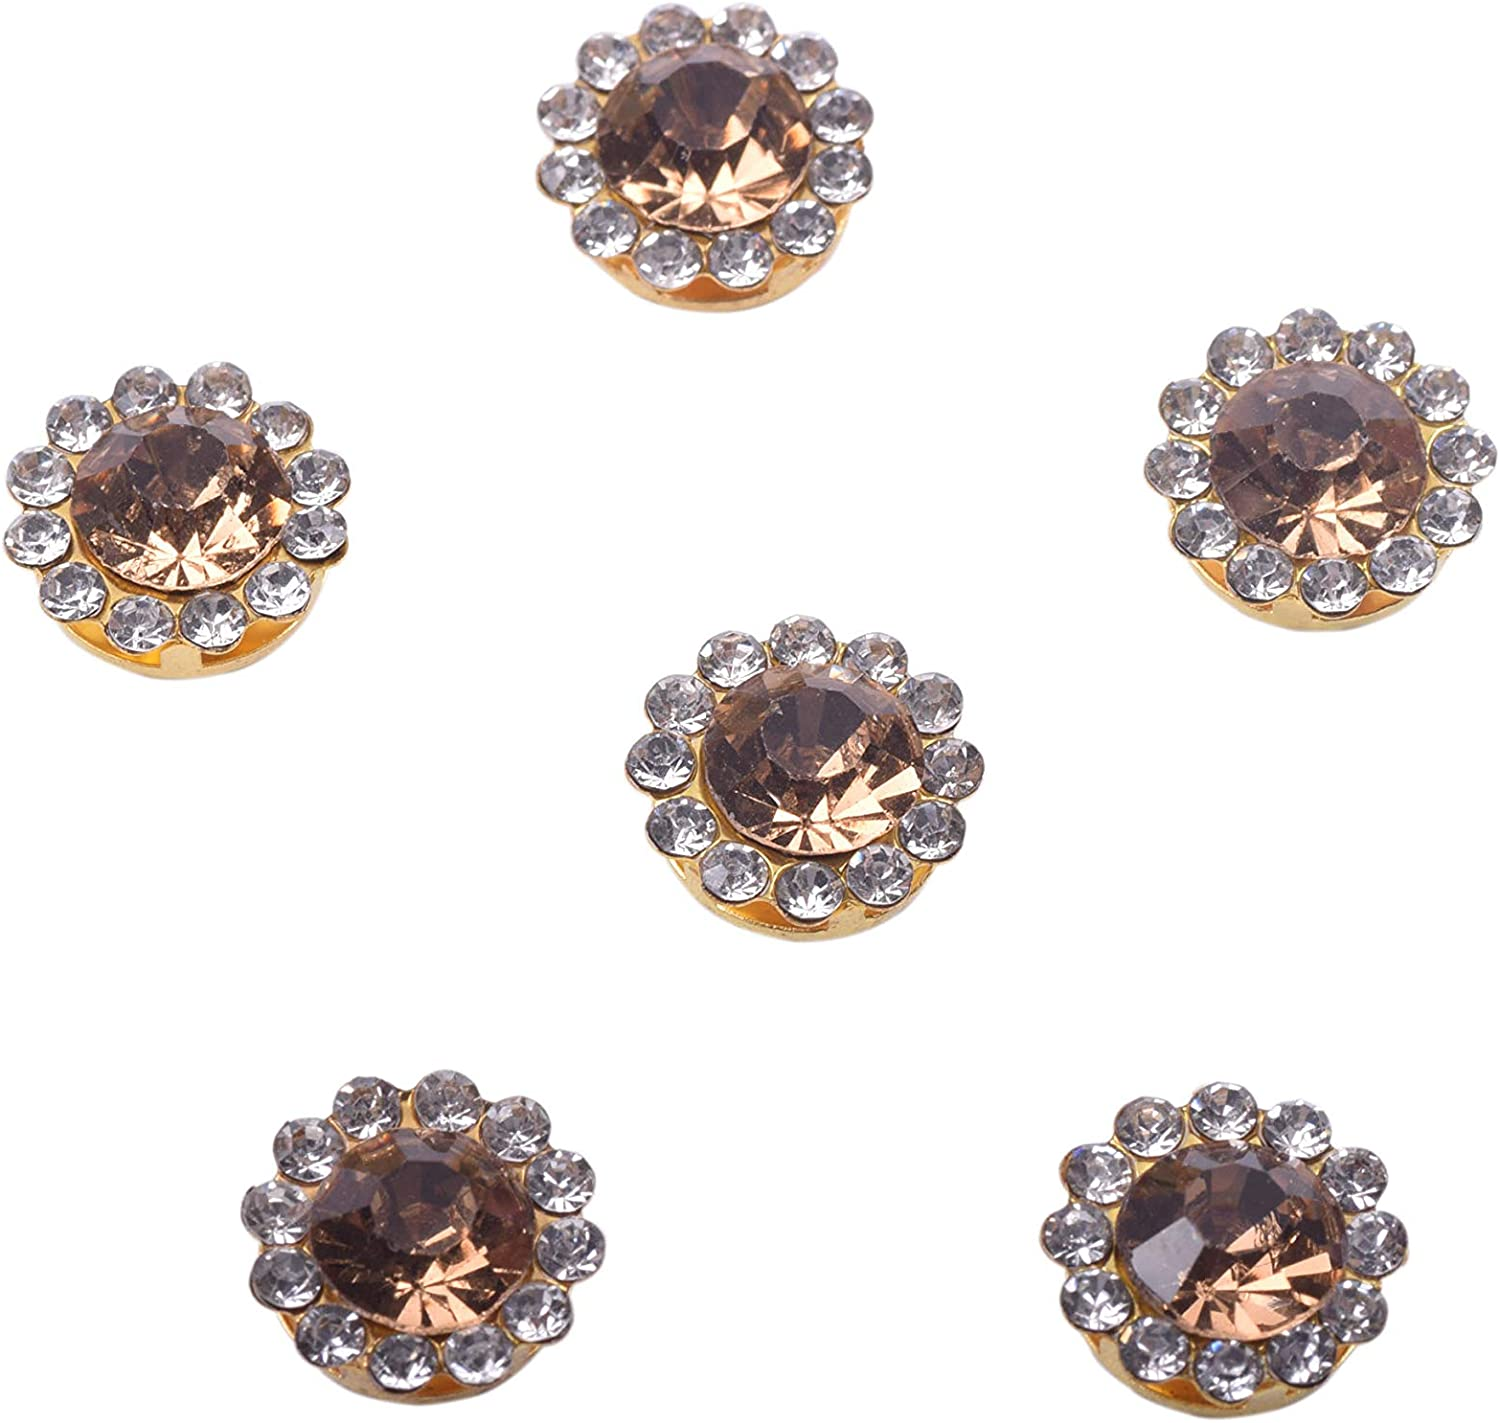 Shoes KAOYOO 100Pcs Sun Flower Shape Crystal Rhinestone Buttons Golden Plated Brass Base Sew on Buttons Ideal for Clothing Bags Light Purple Headpieces,Wedding Dress